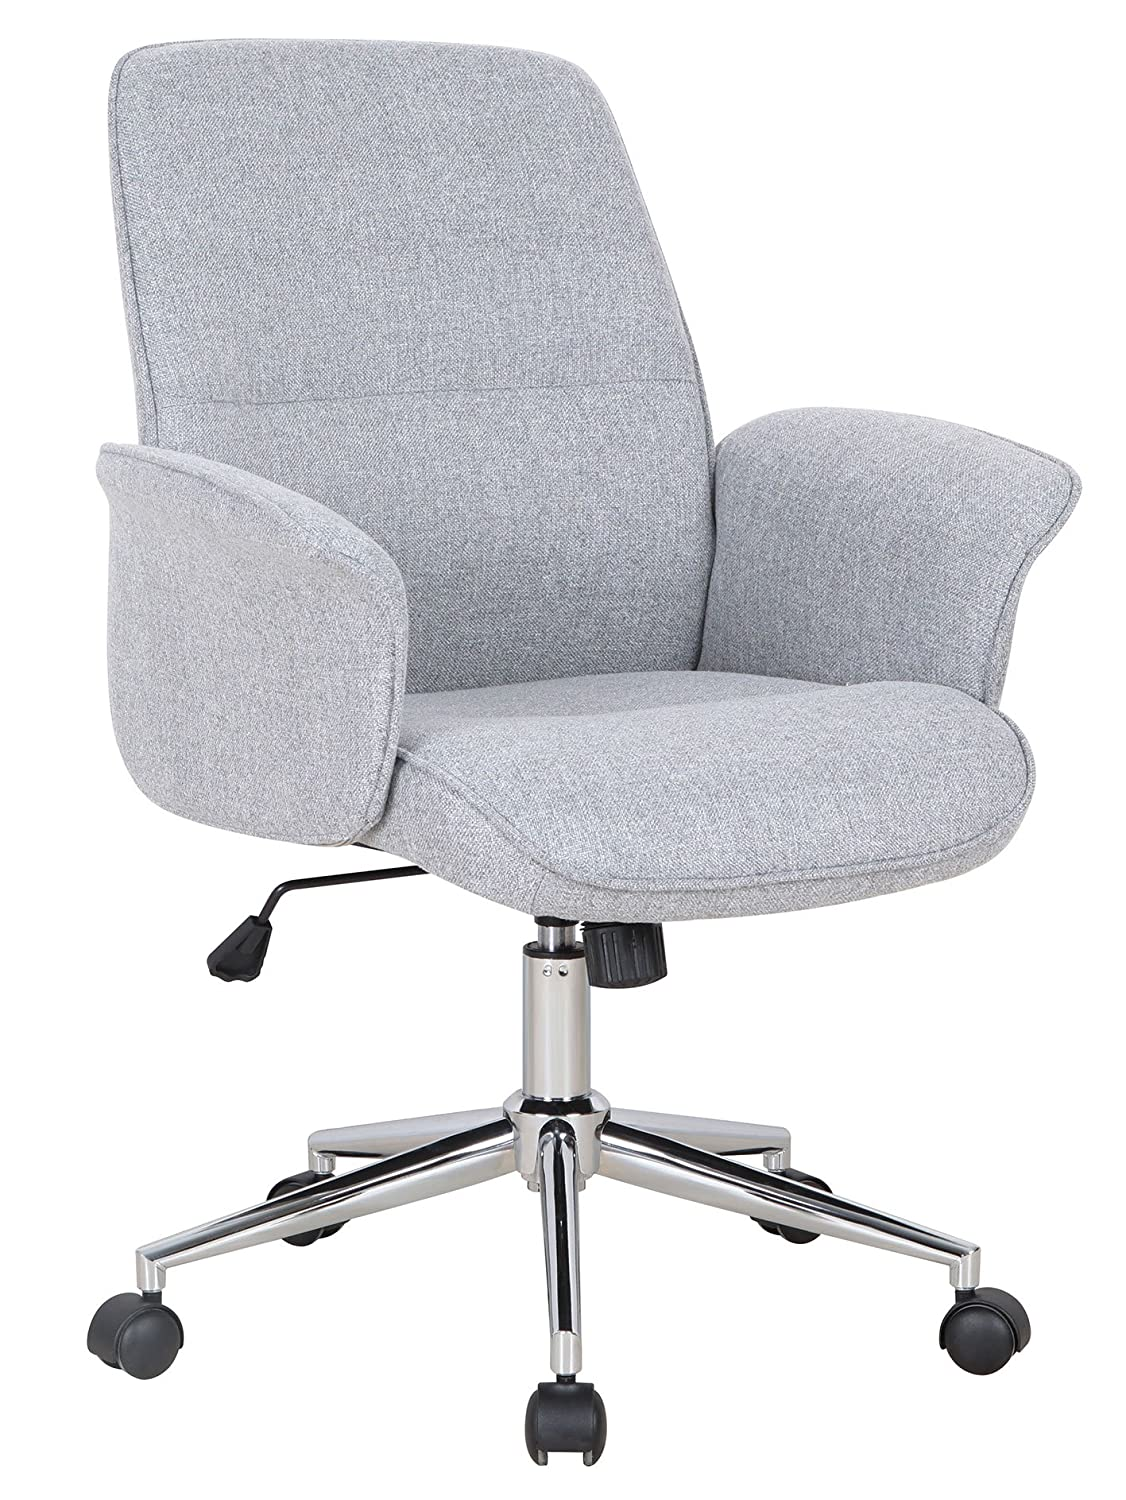 Superior Office Swivel Chair Grey   0704M/2488